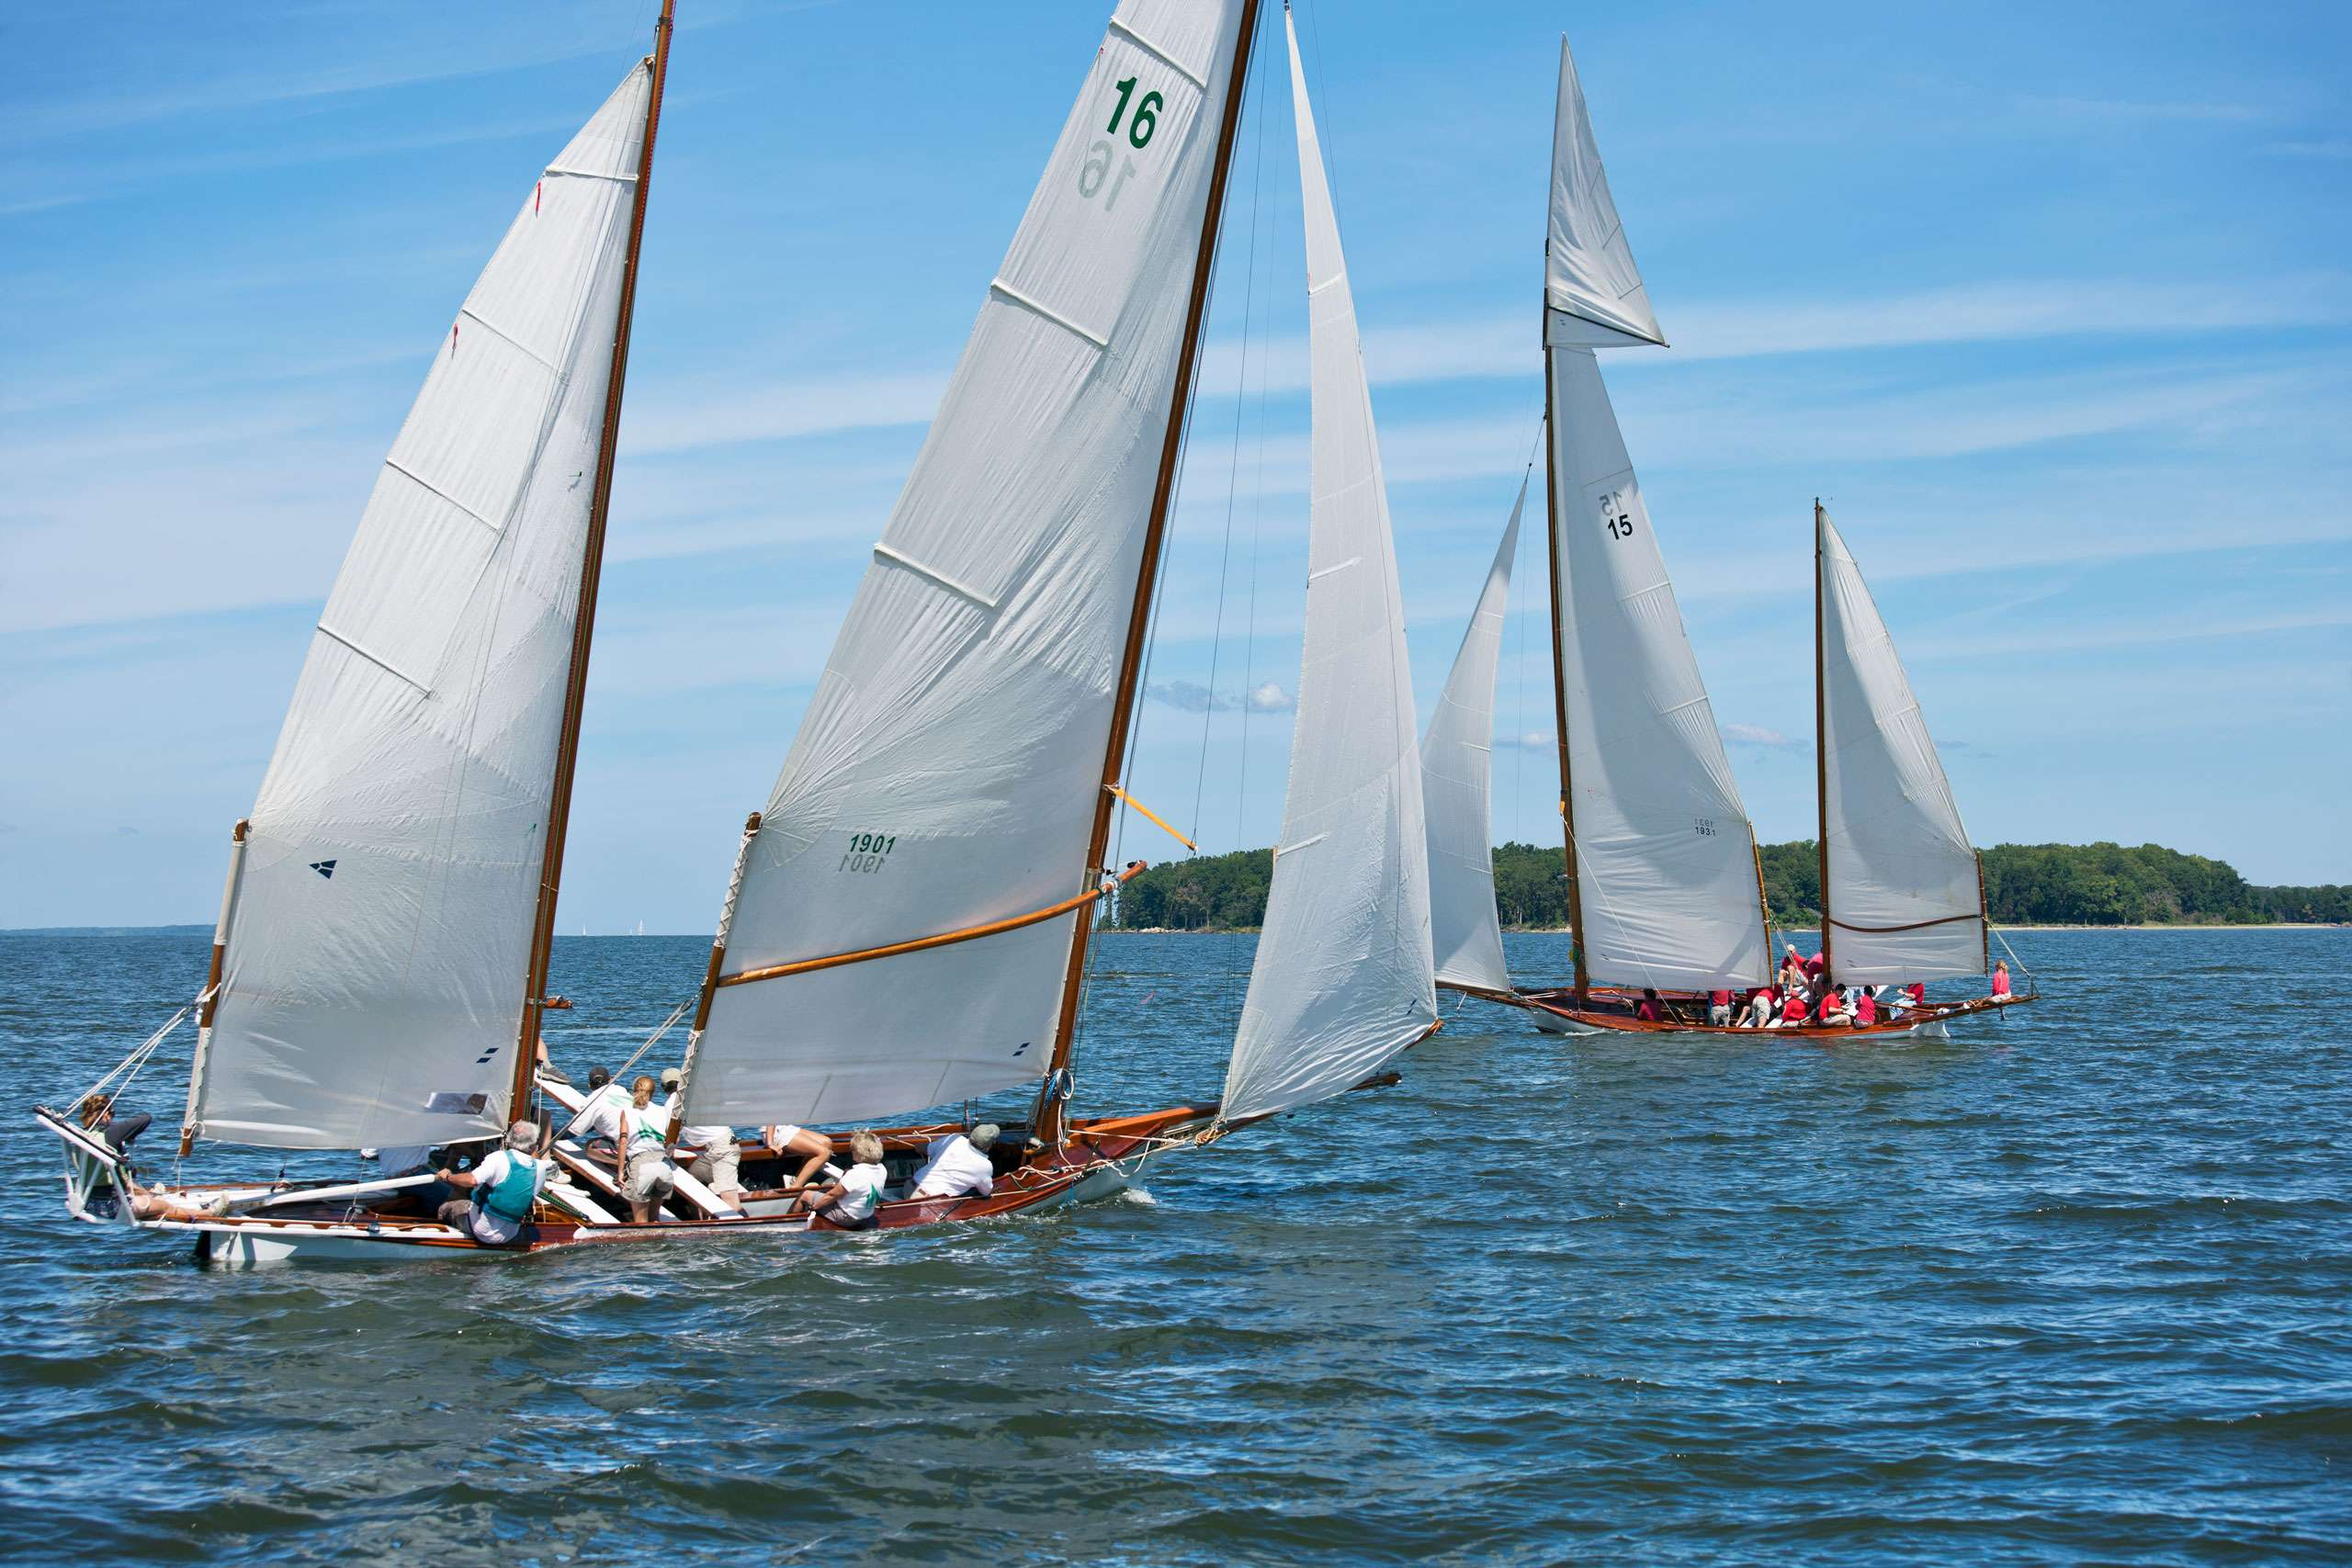 PORTFOLIO - Sailing - Log Canoes #19   PCG579